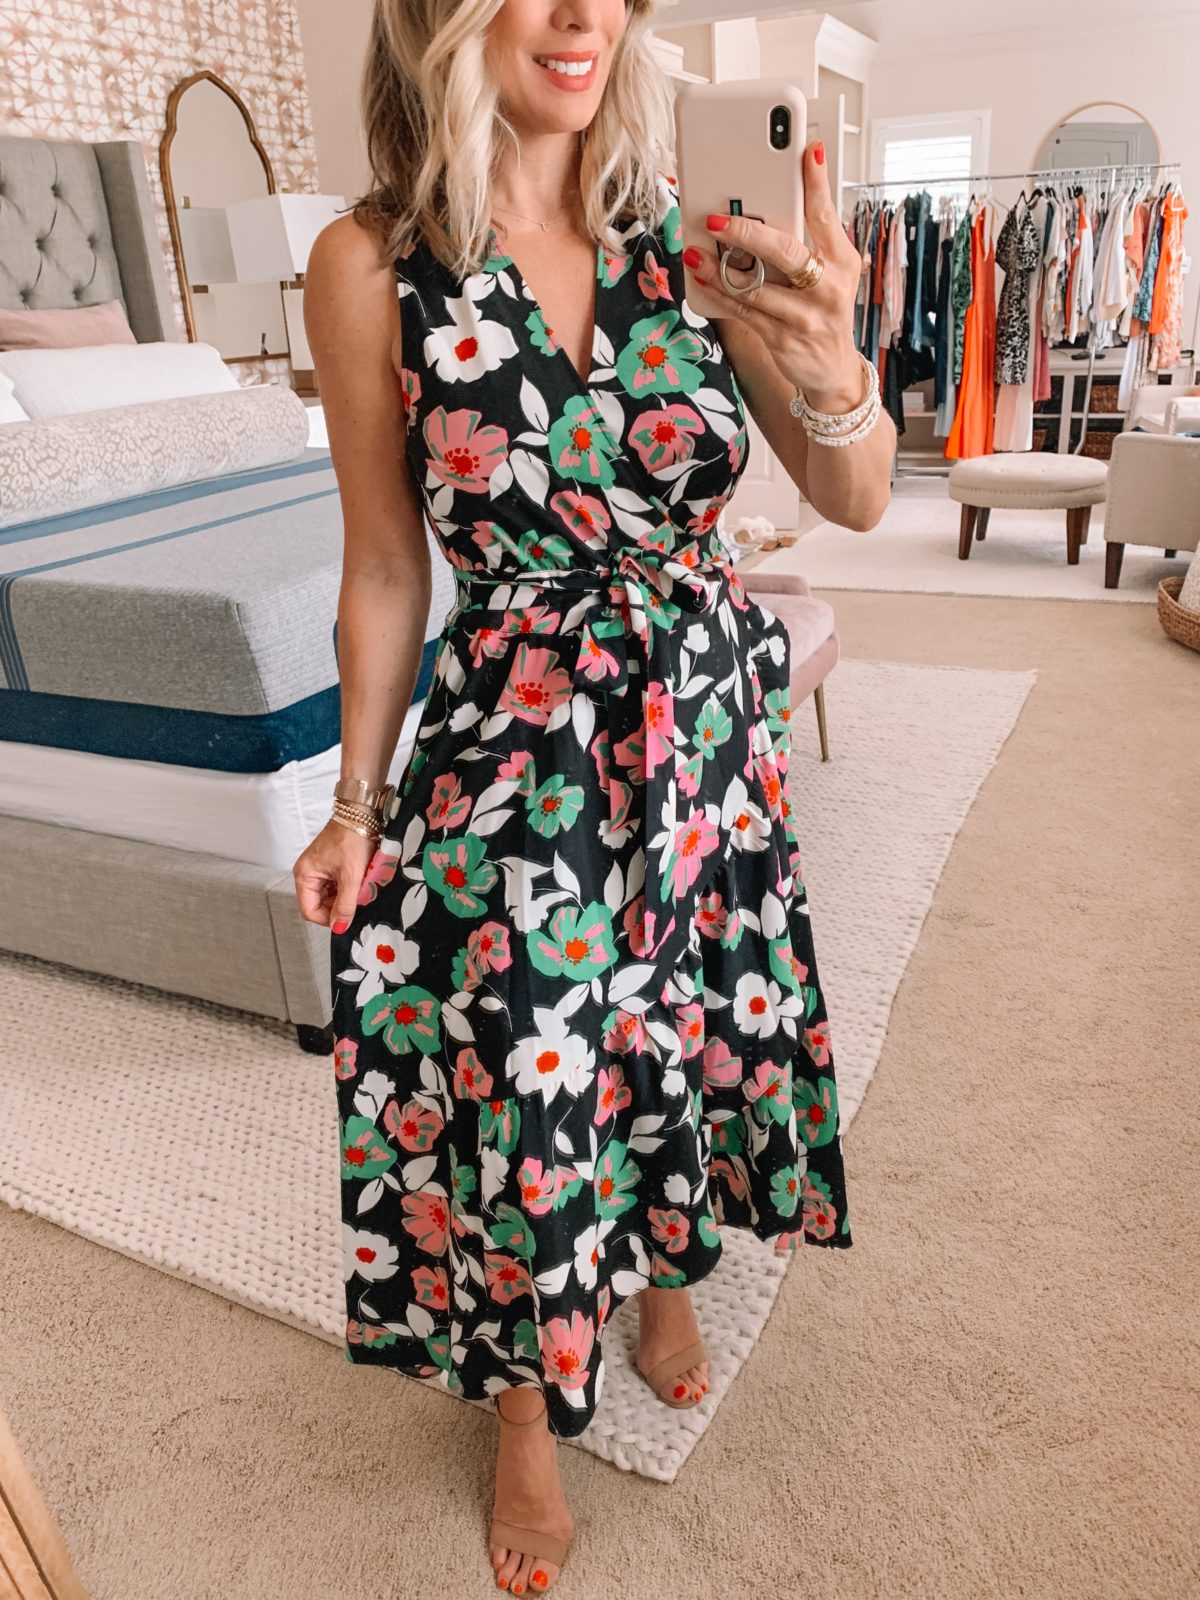 Dressing Room Finds Nordstrom and Target, Black Floral Wrap Dress, Nude Heels